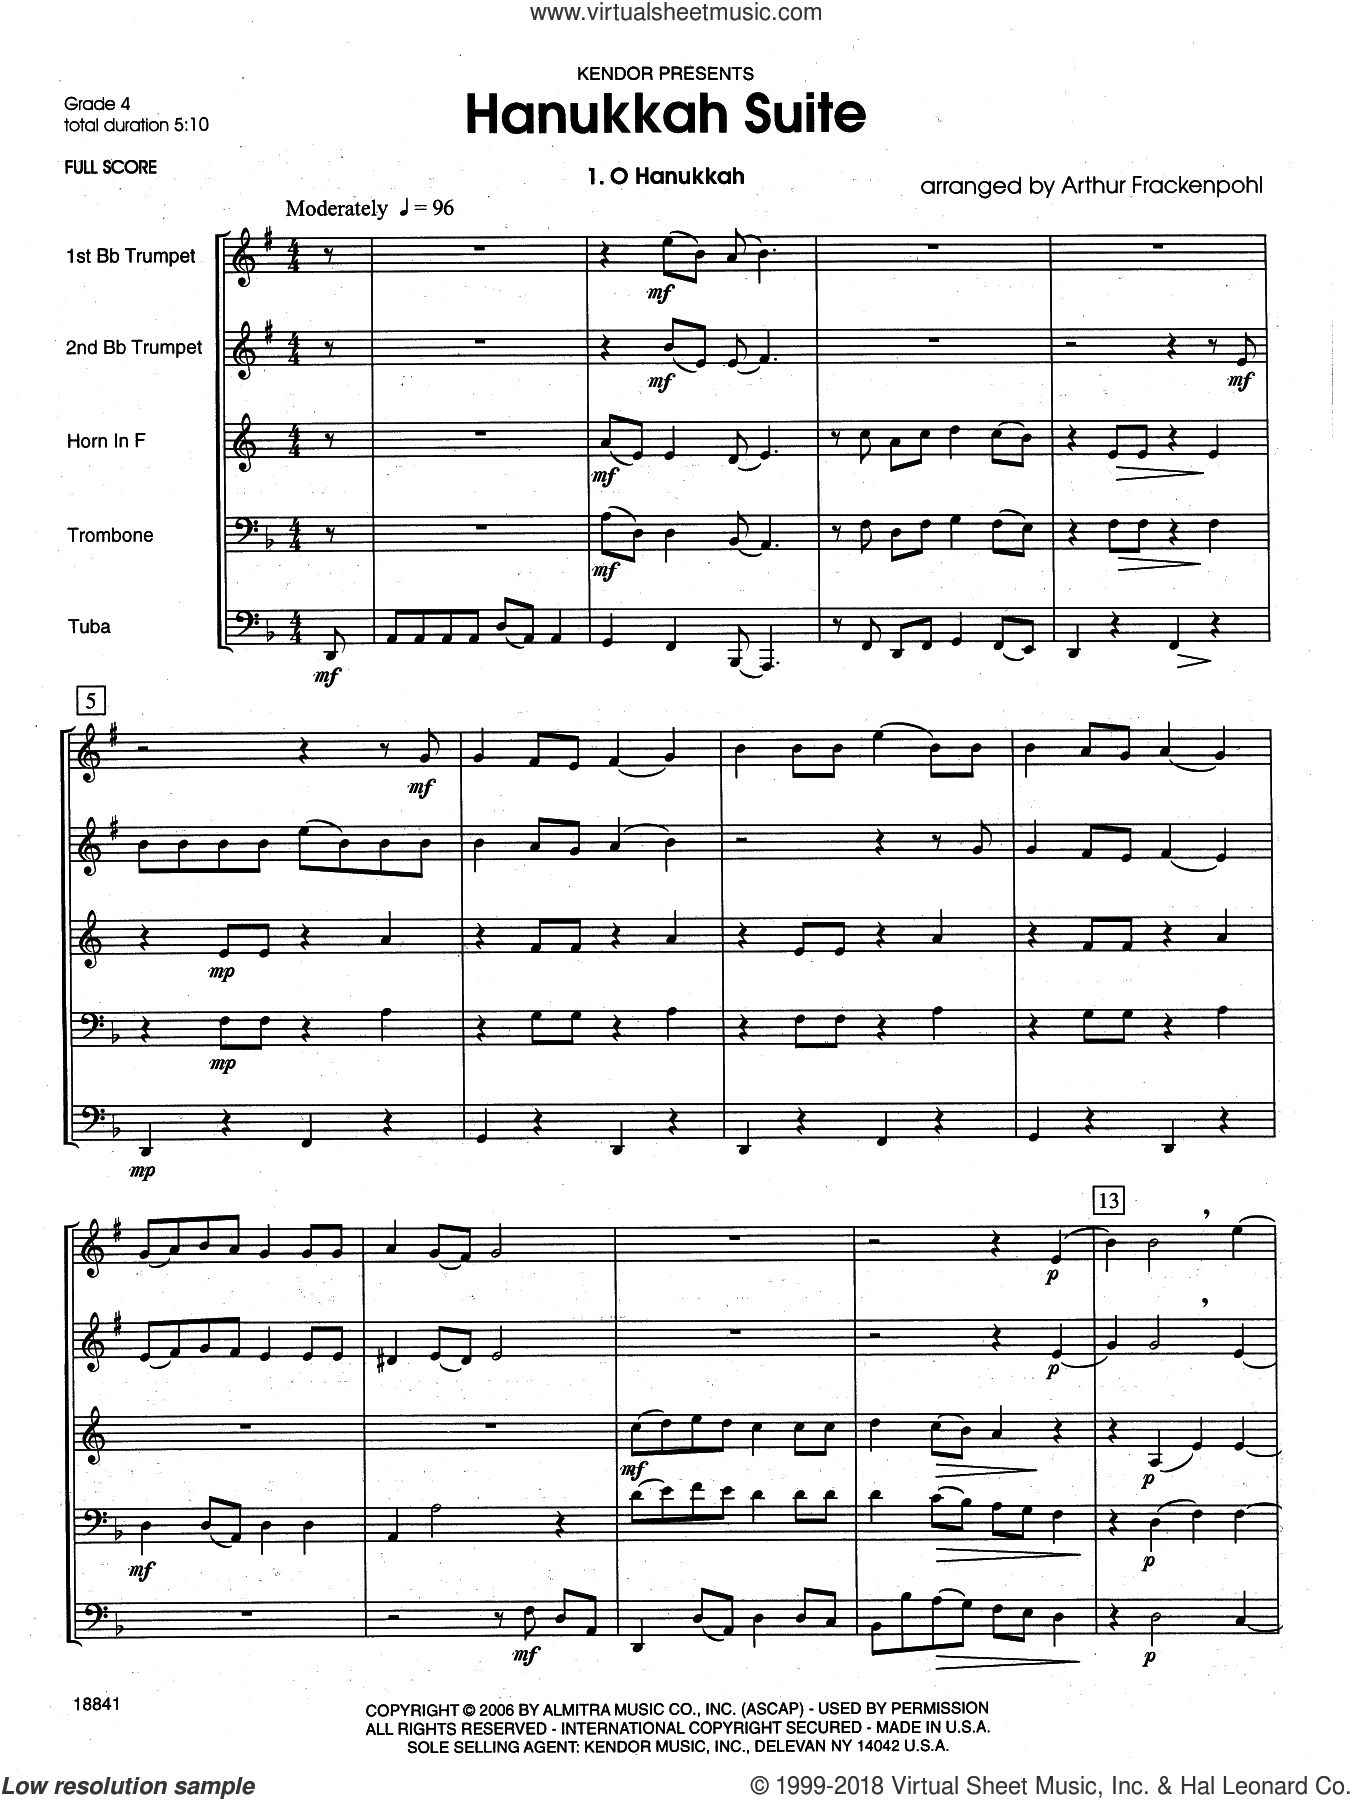 Hanukkah Suite (COMPLETE) sheet music for brass quintet by Arthur Frackenpohl, intermediate. Score Image Preview.